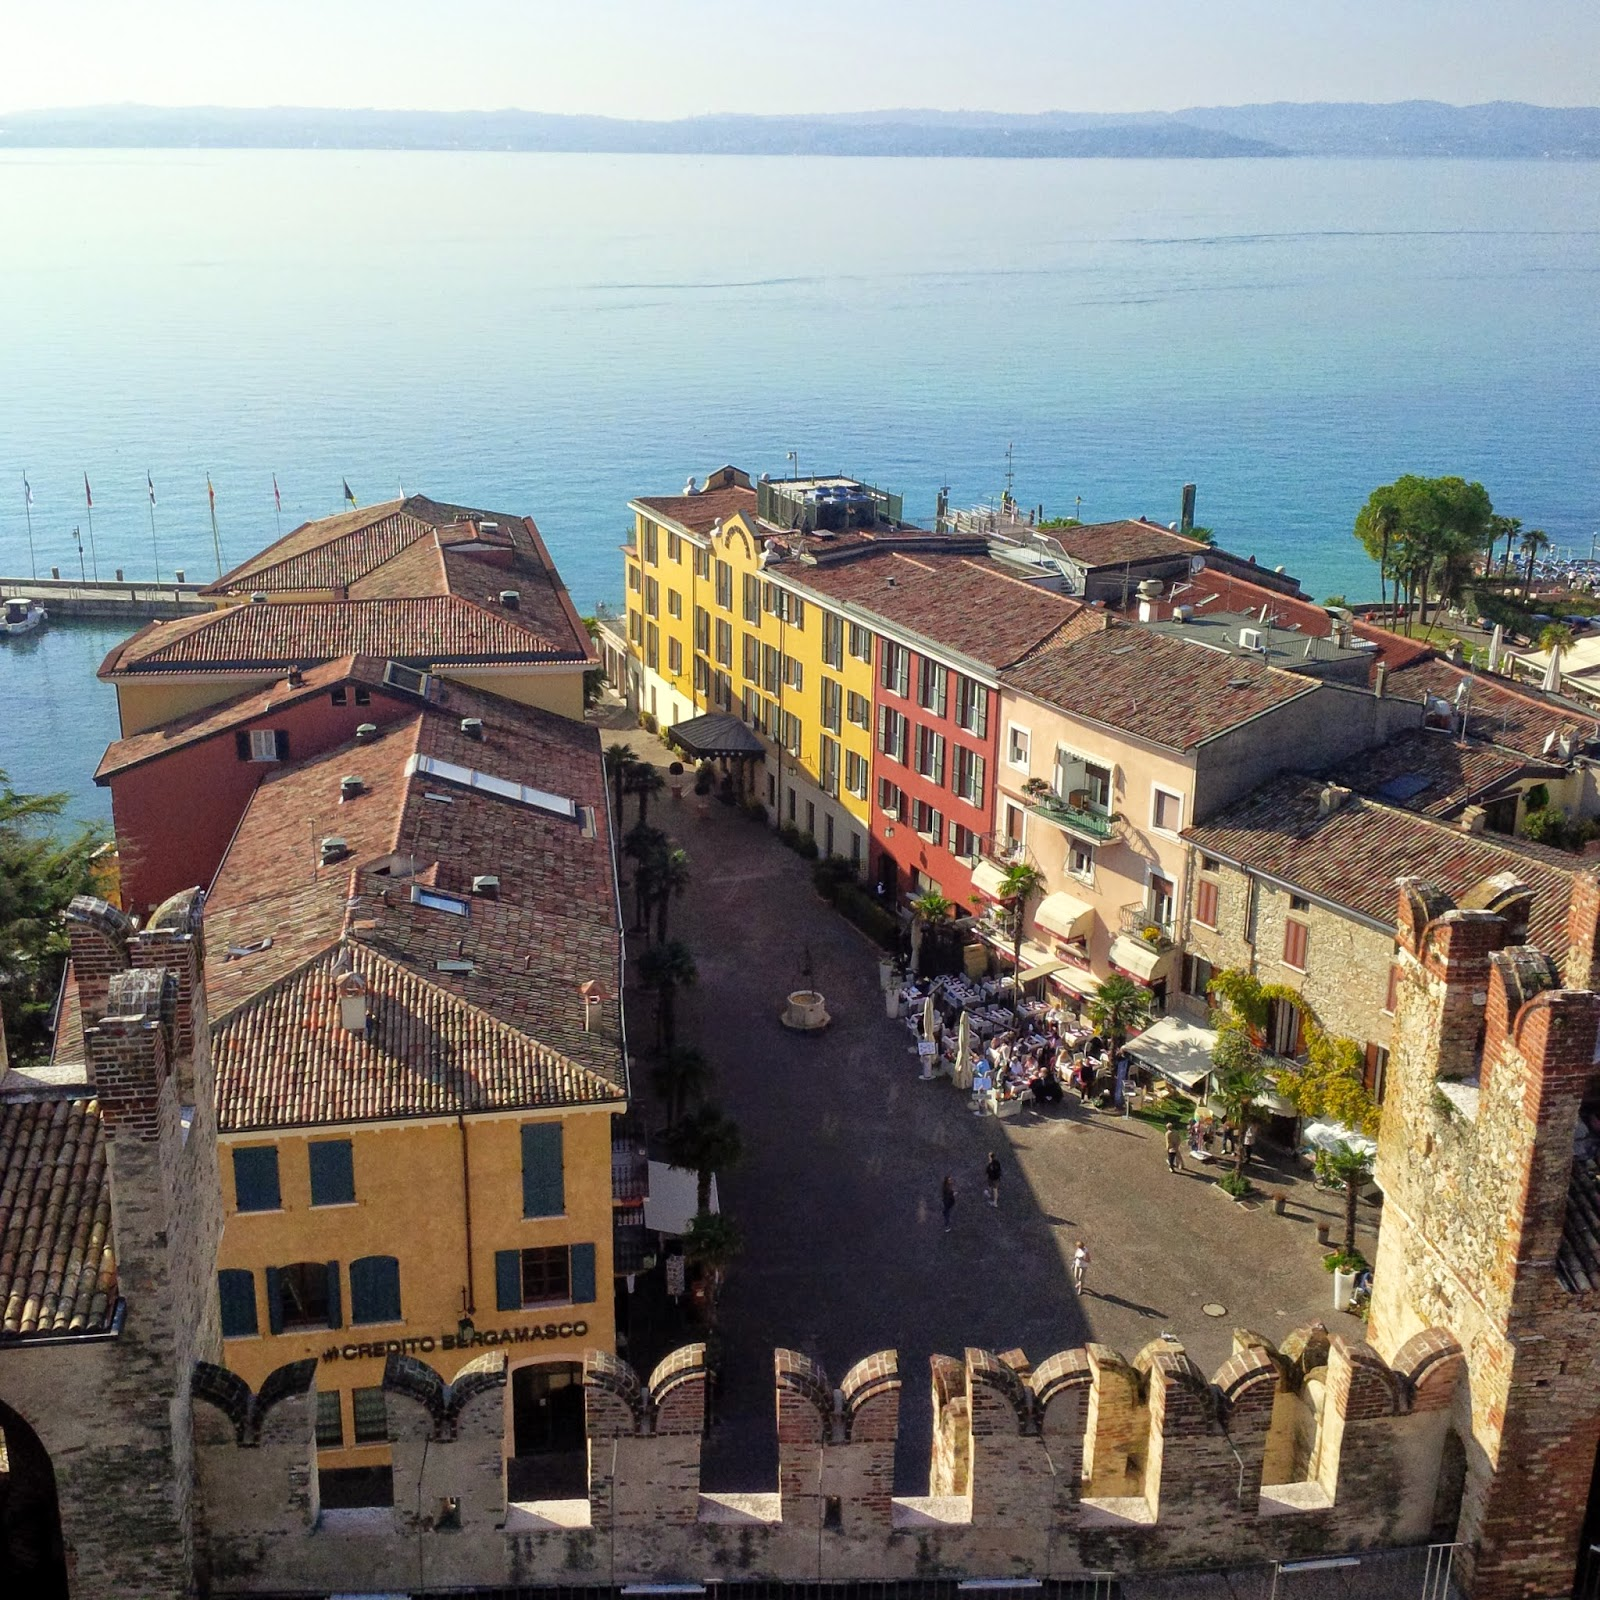 The main square in Sirmione seen from the castle walls